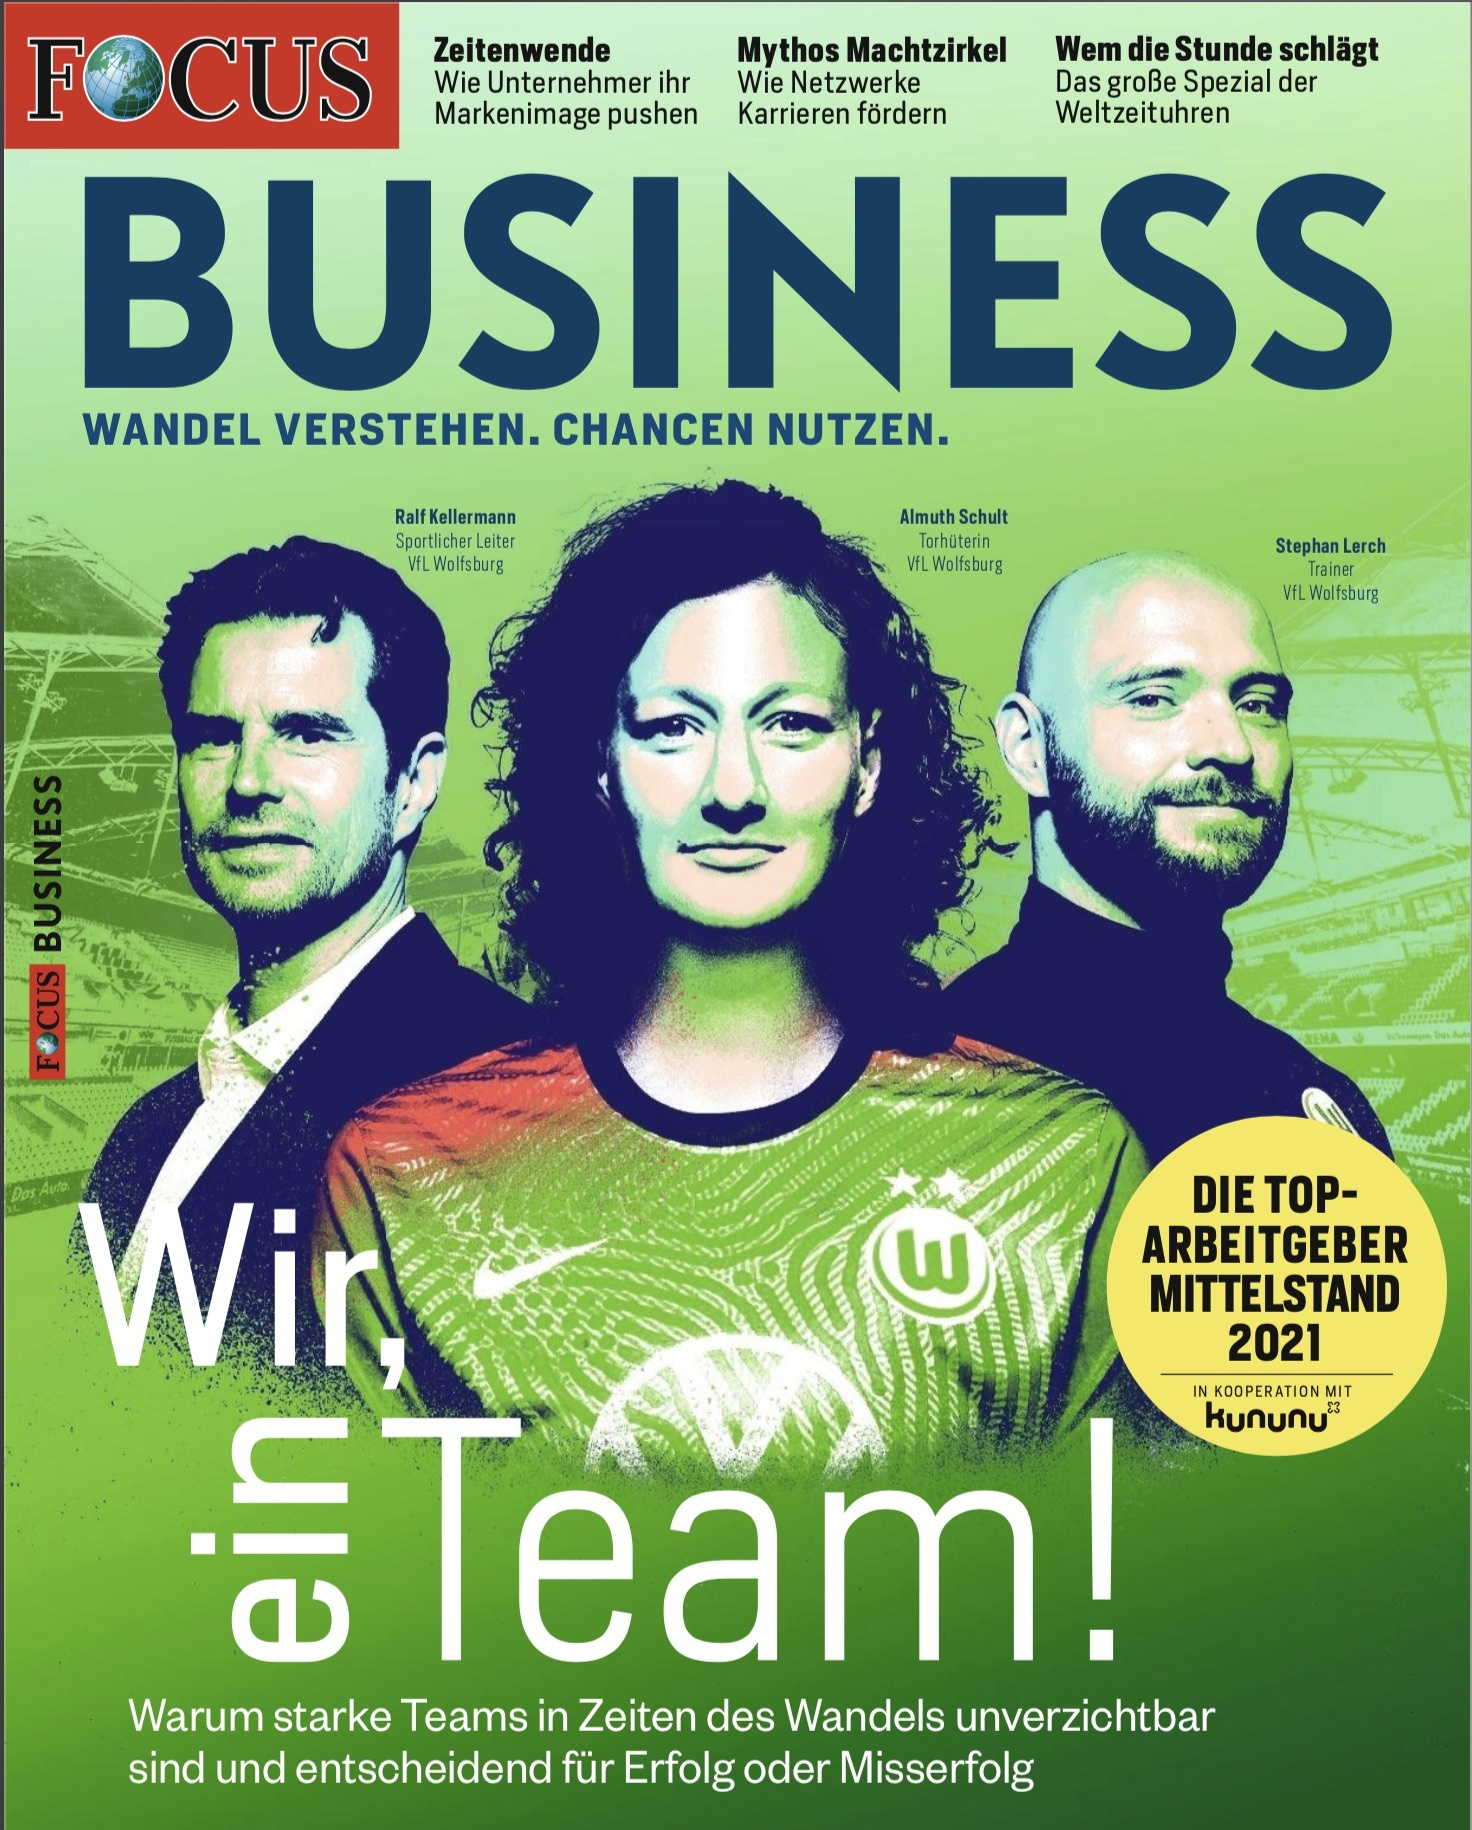 FOCUS-BUSINESS FOCUS BUSINESS - Mittelstand 2021